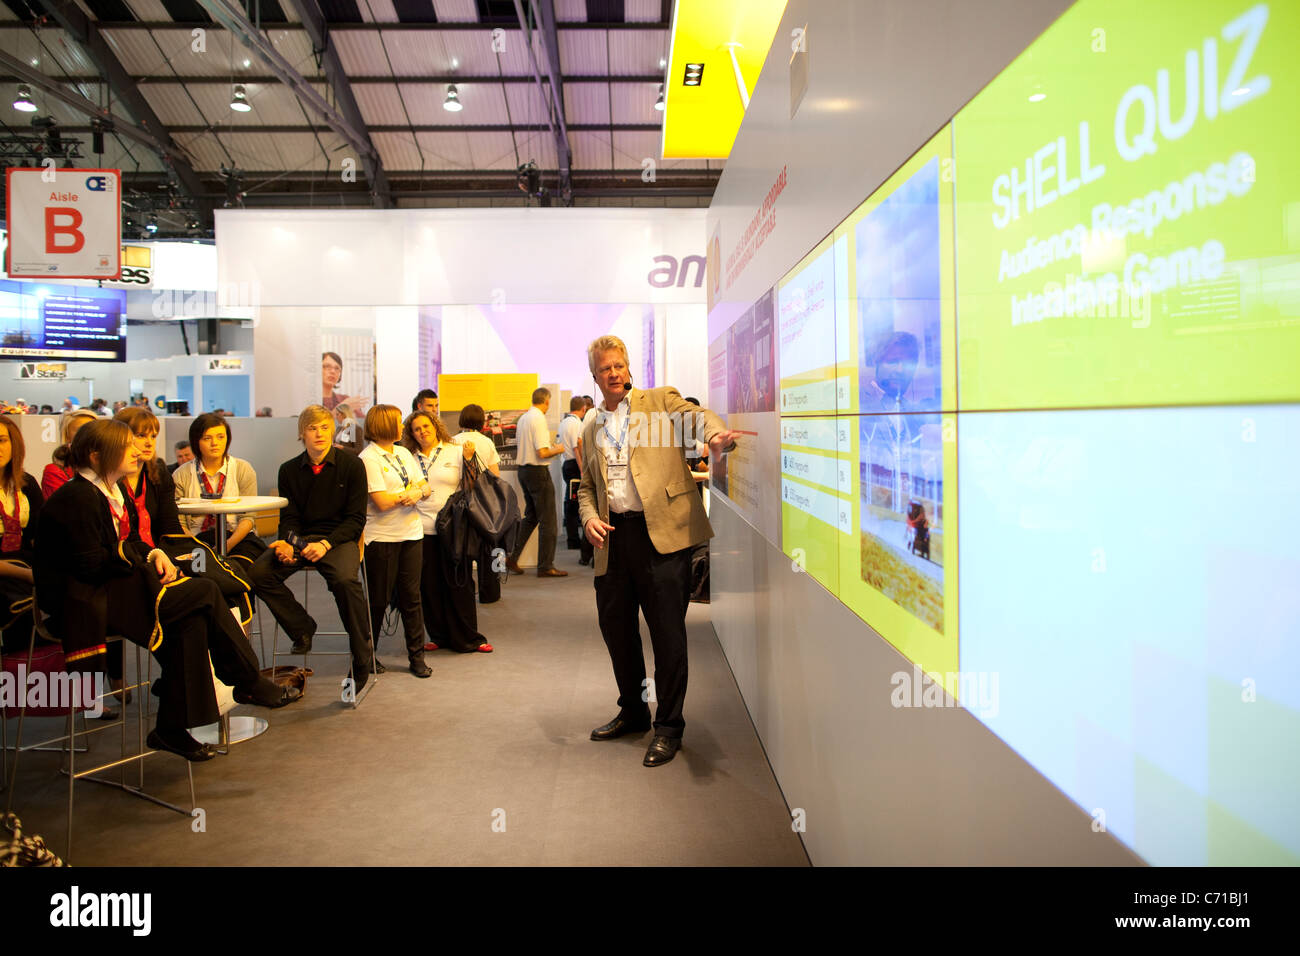 Shell Photography Exhibition : Shell stand at offshore europe oil and gas conference